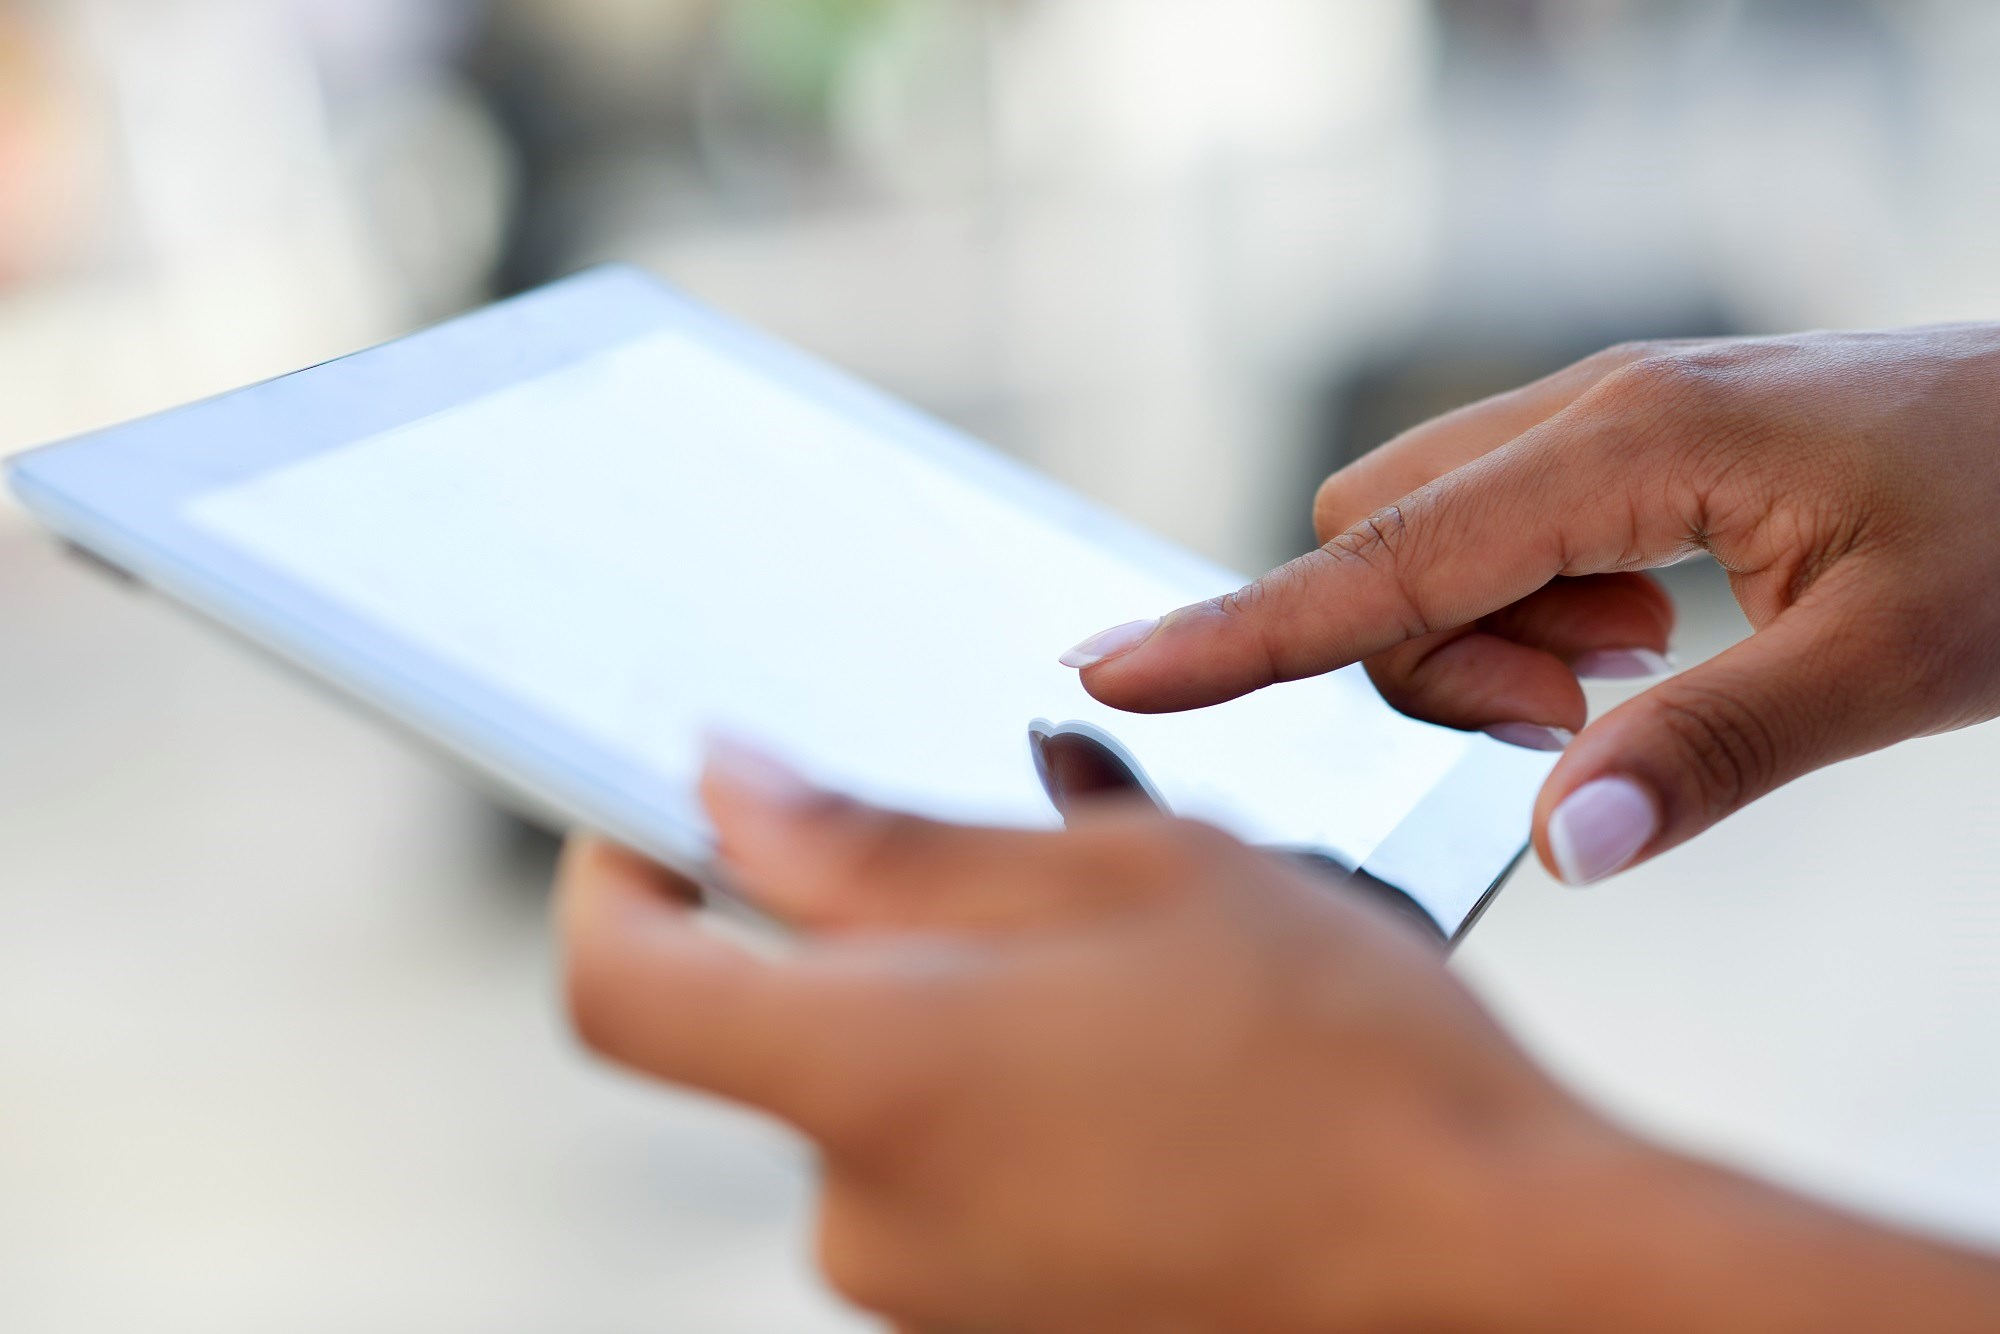 Cognitive Impairment in MS Can Be Measured Using Touchscreen Platform